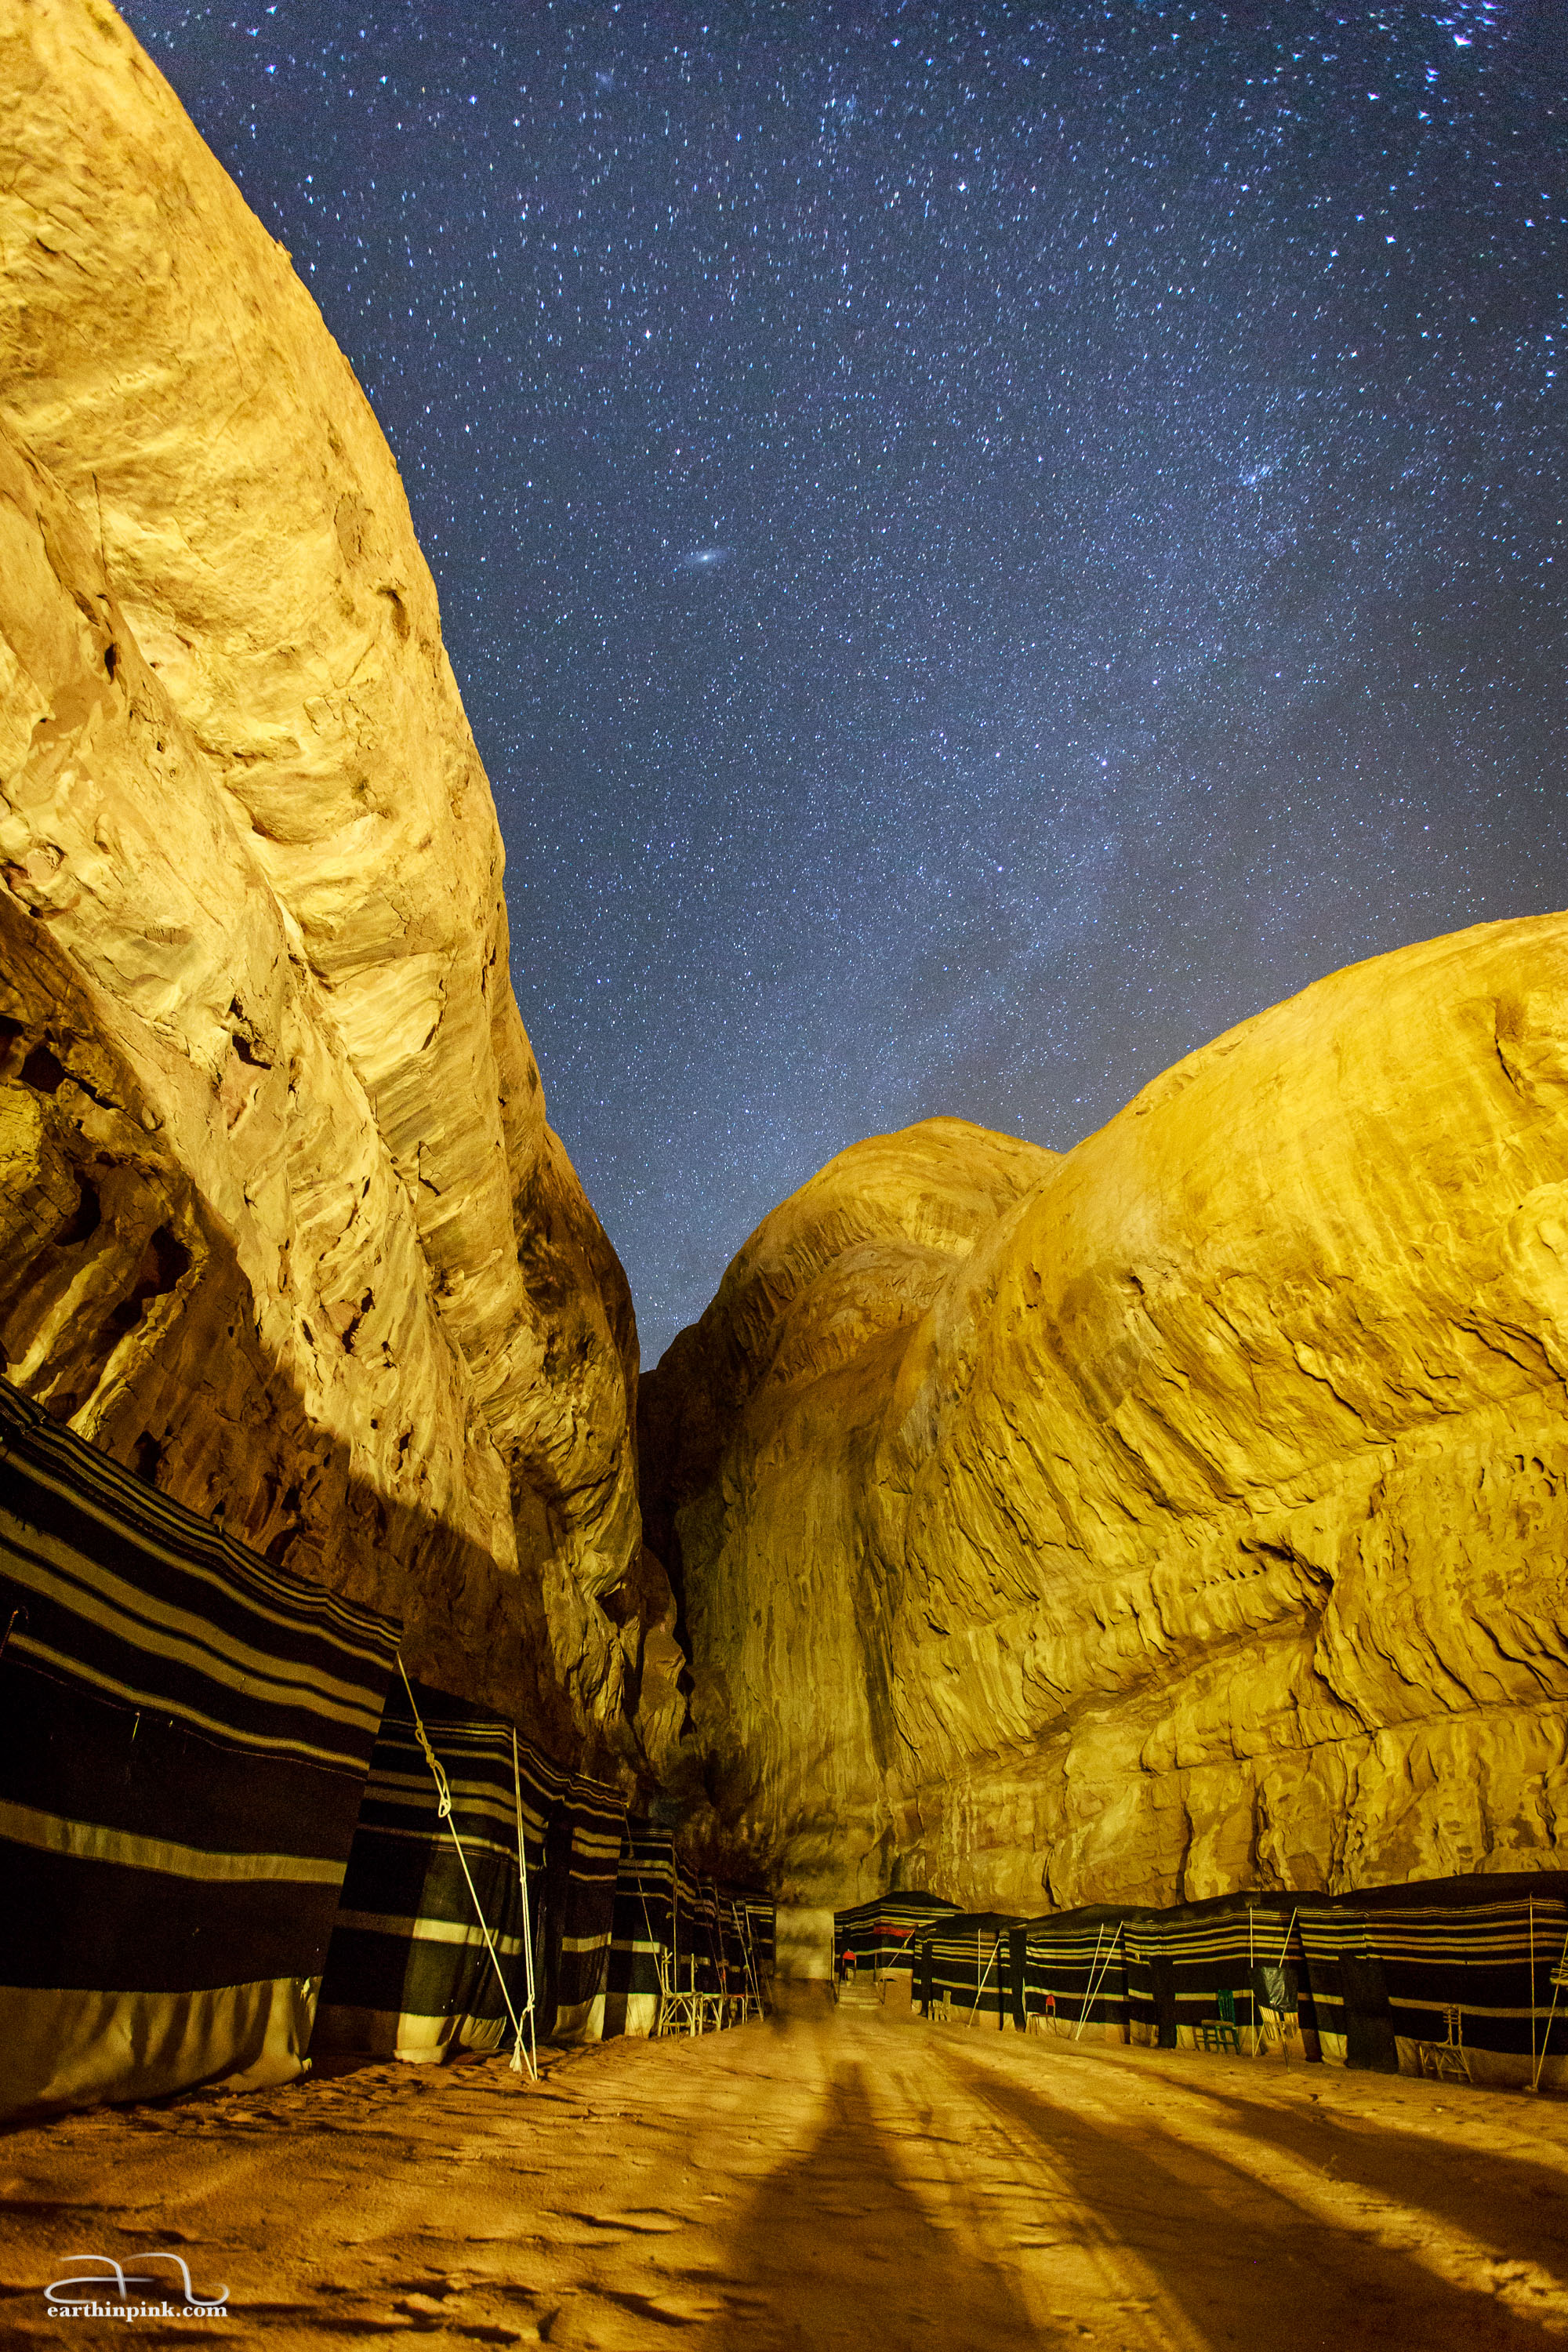 Starry night with a view of Andromeda over our bedouin camp in Wadi Rum.